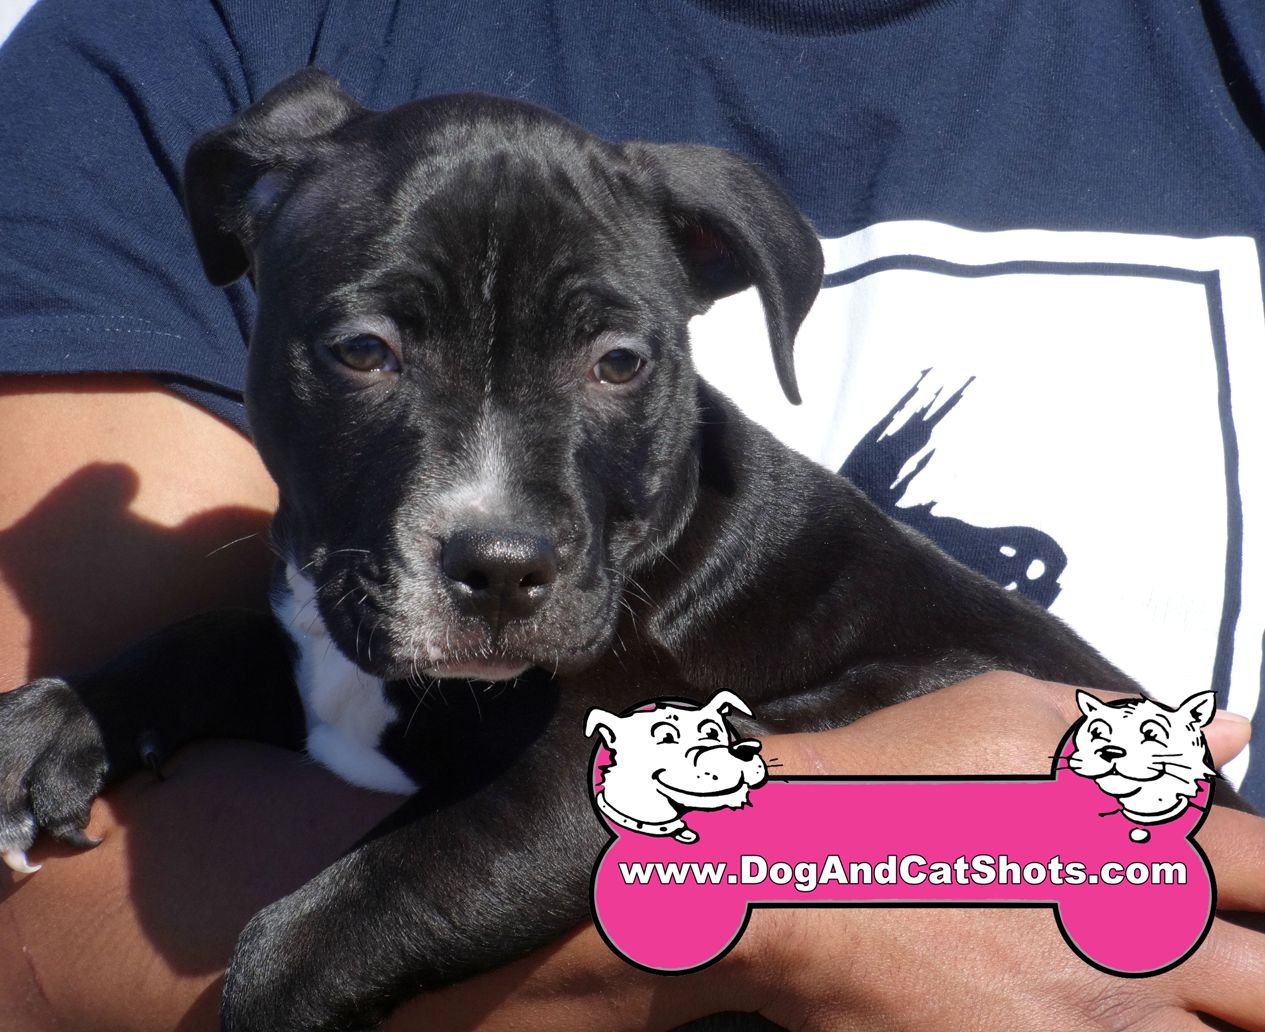 Zeus The Pitbull Puppy Visited Us In Sacramento